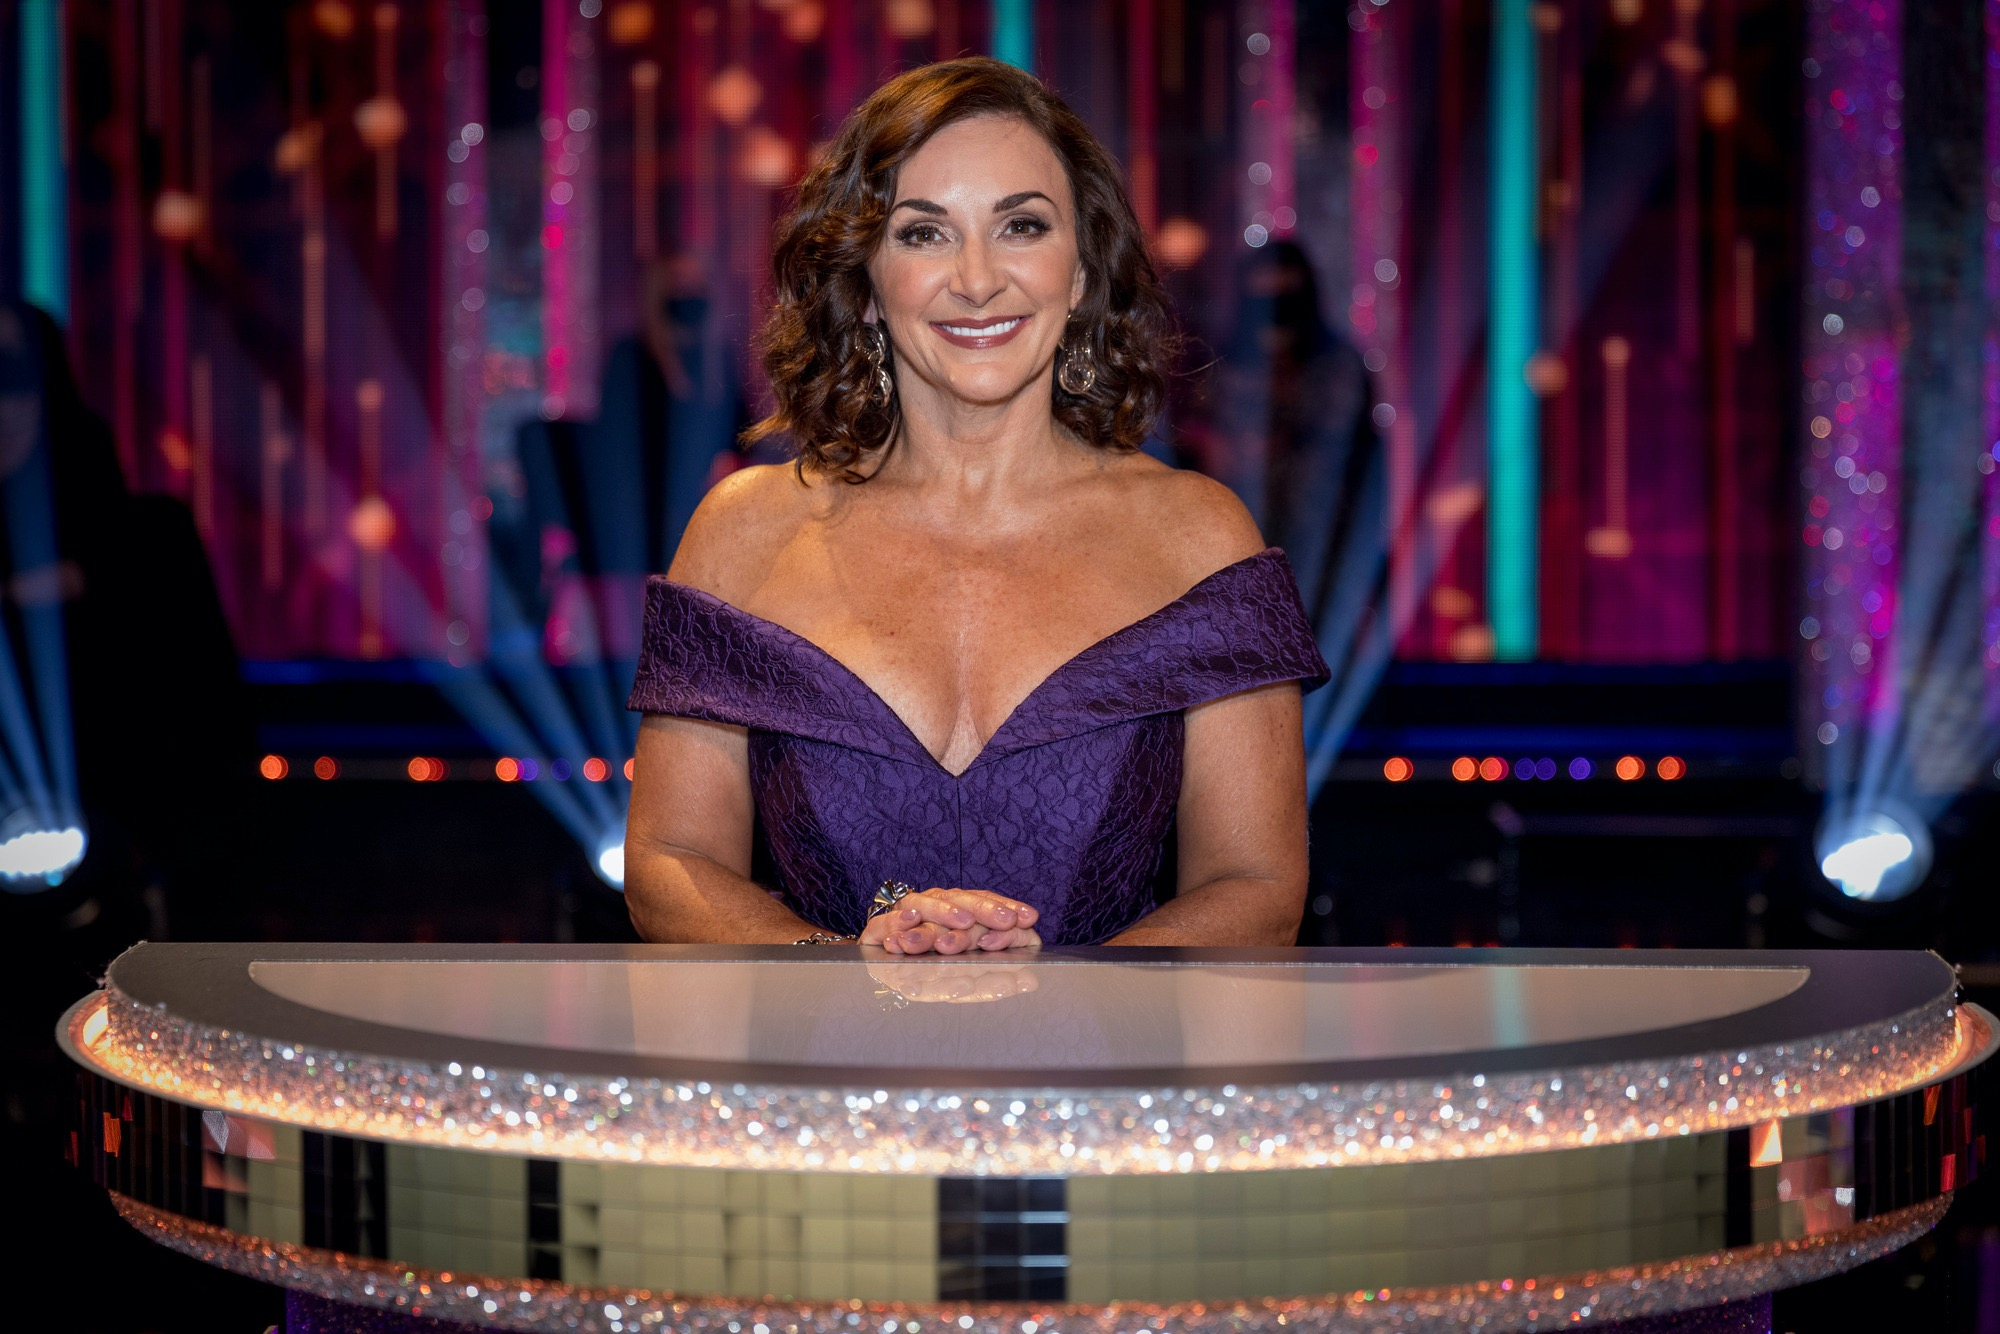 strictly come dancing 2021 - photo #24